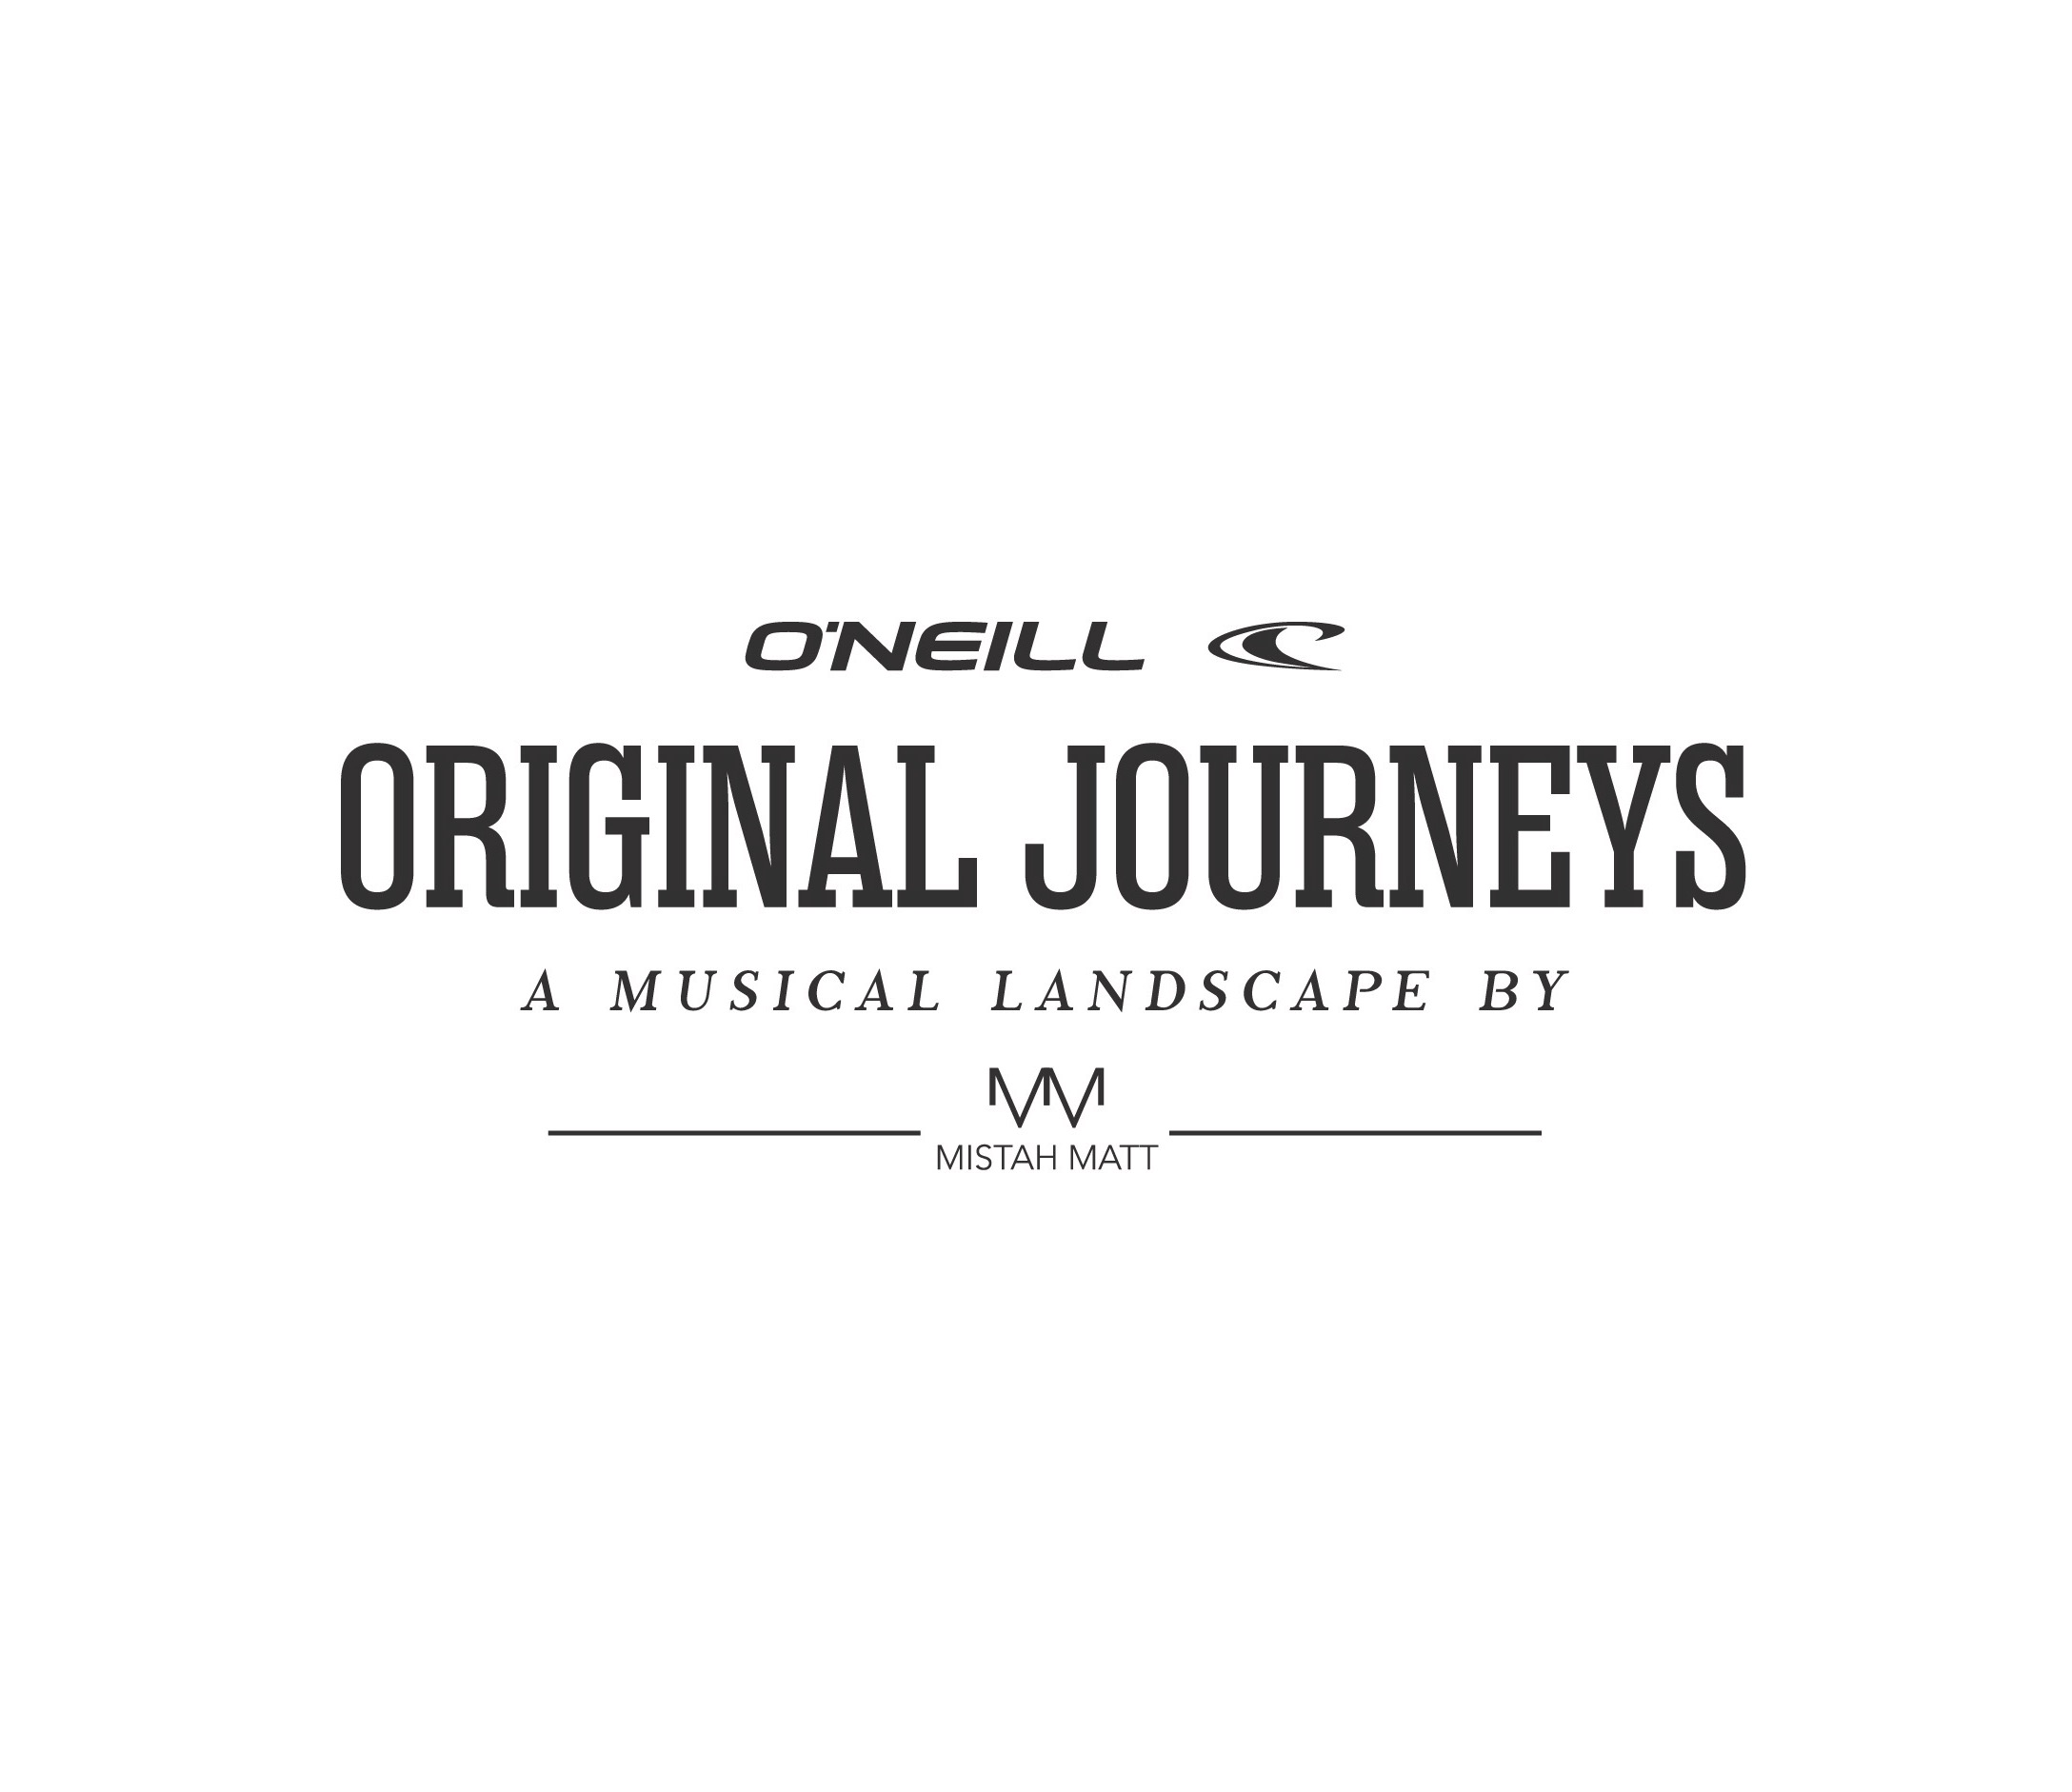 Original Journeys